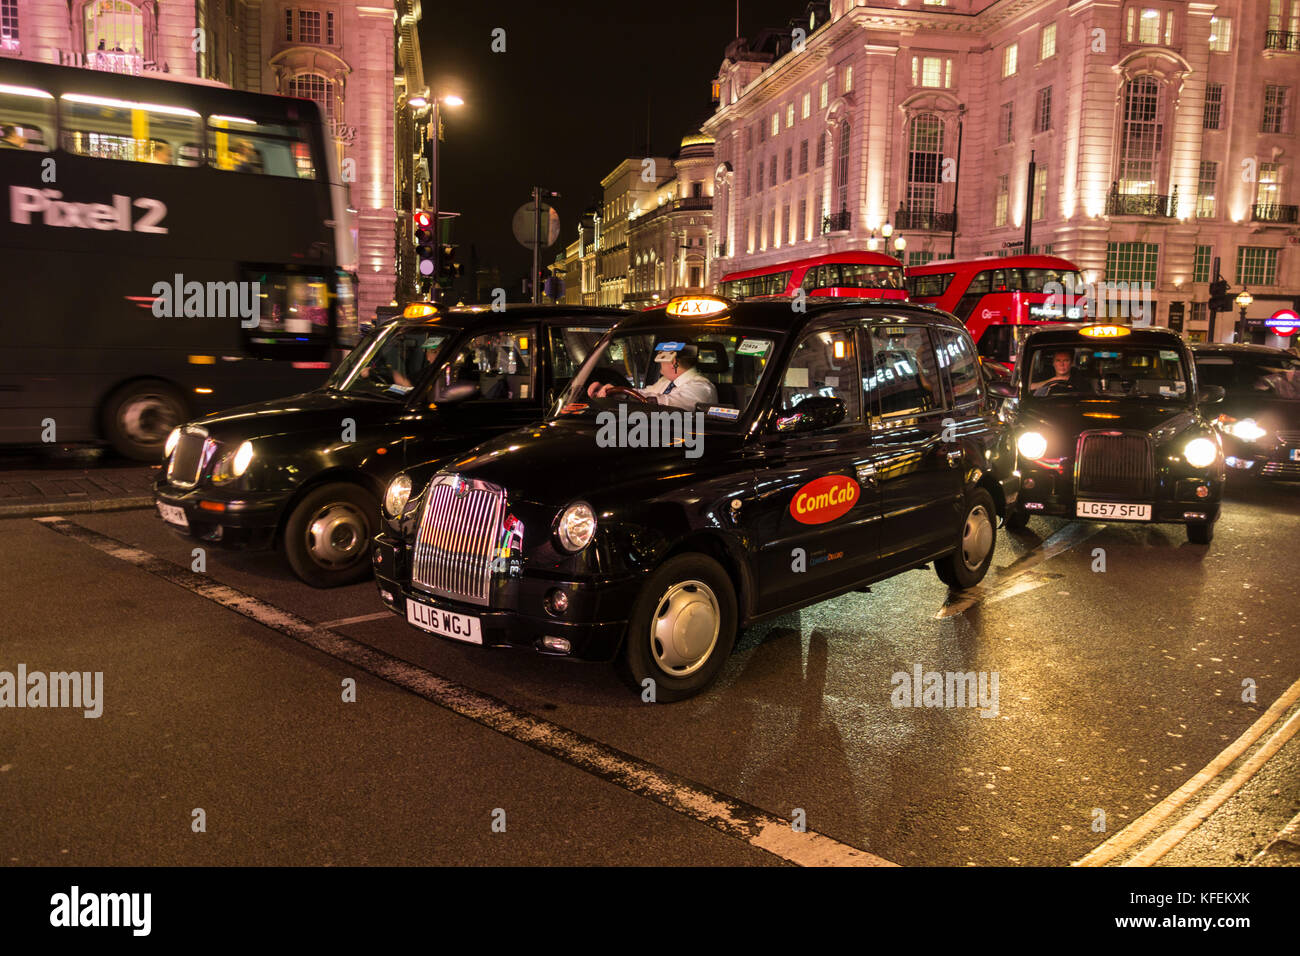 Black London taxicabs waiting for the lights to change on Piccadilly Circus, London, UK - Stock Image